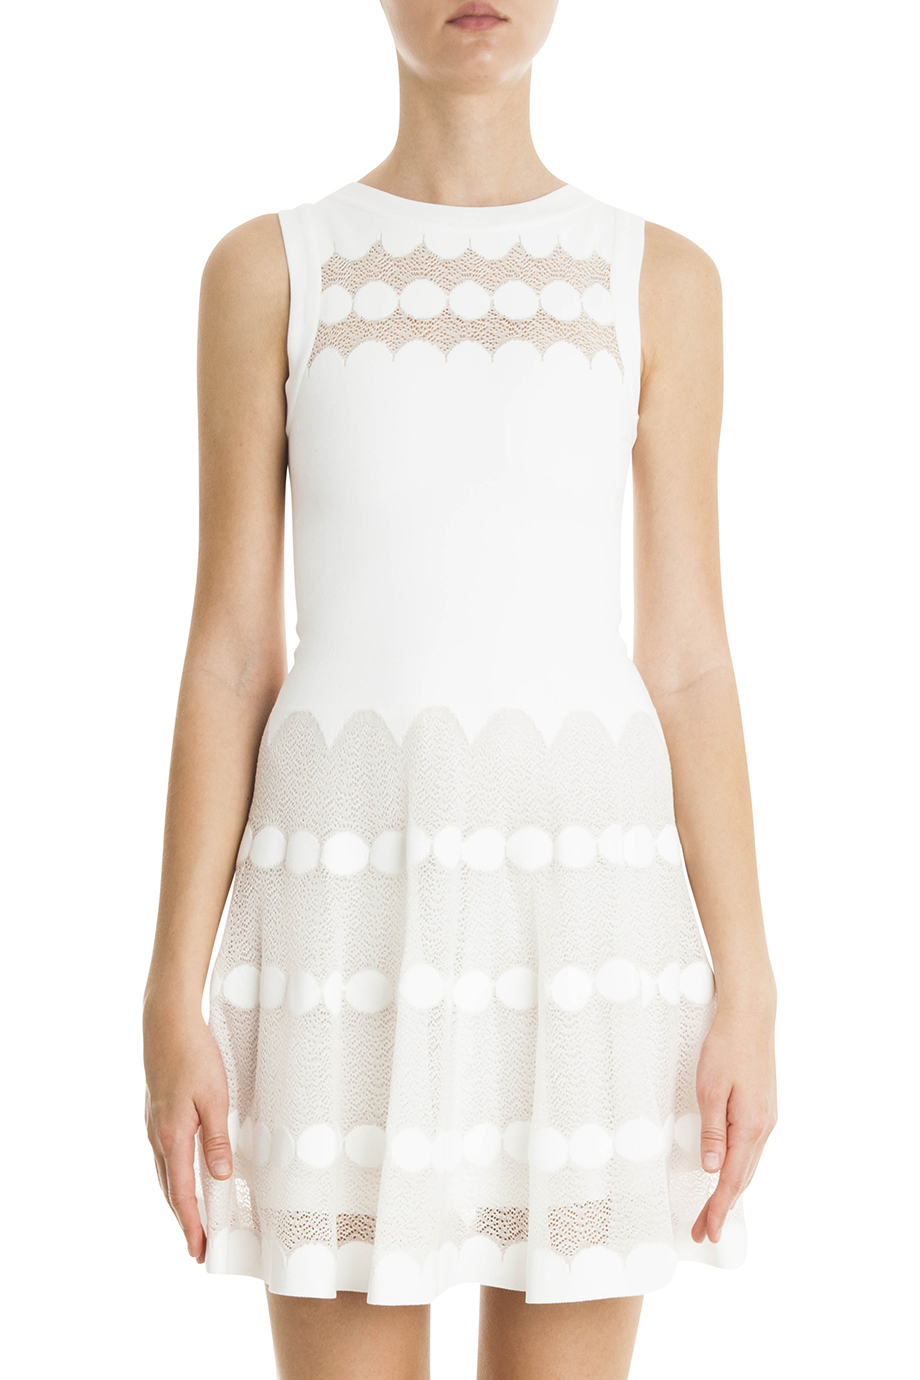 Azzedine Alaia White Dress